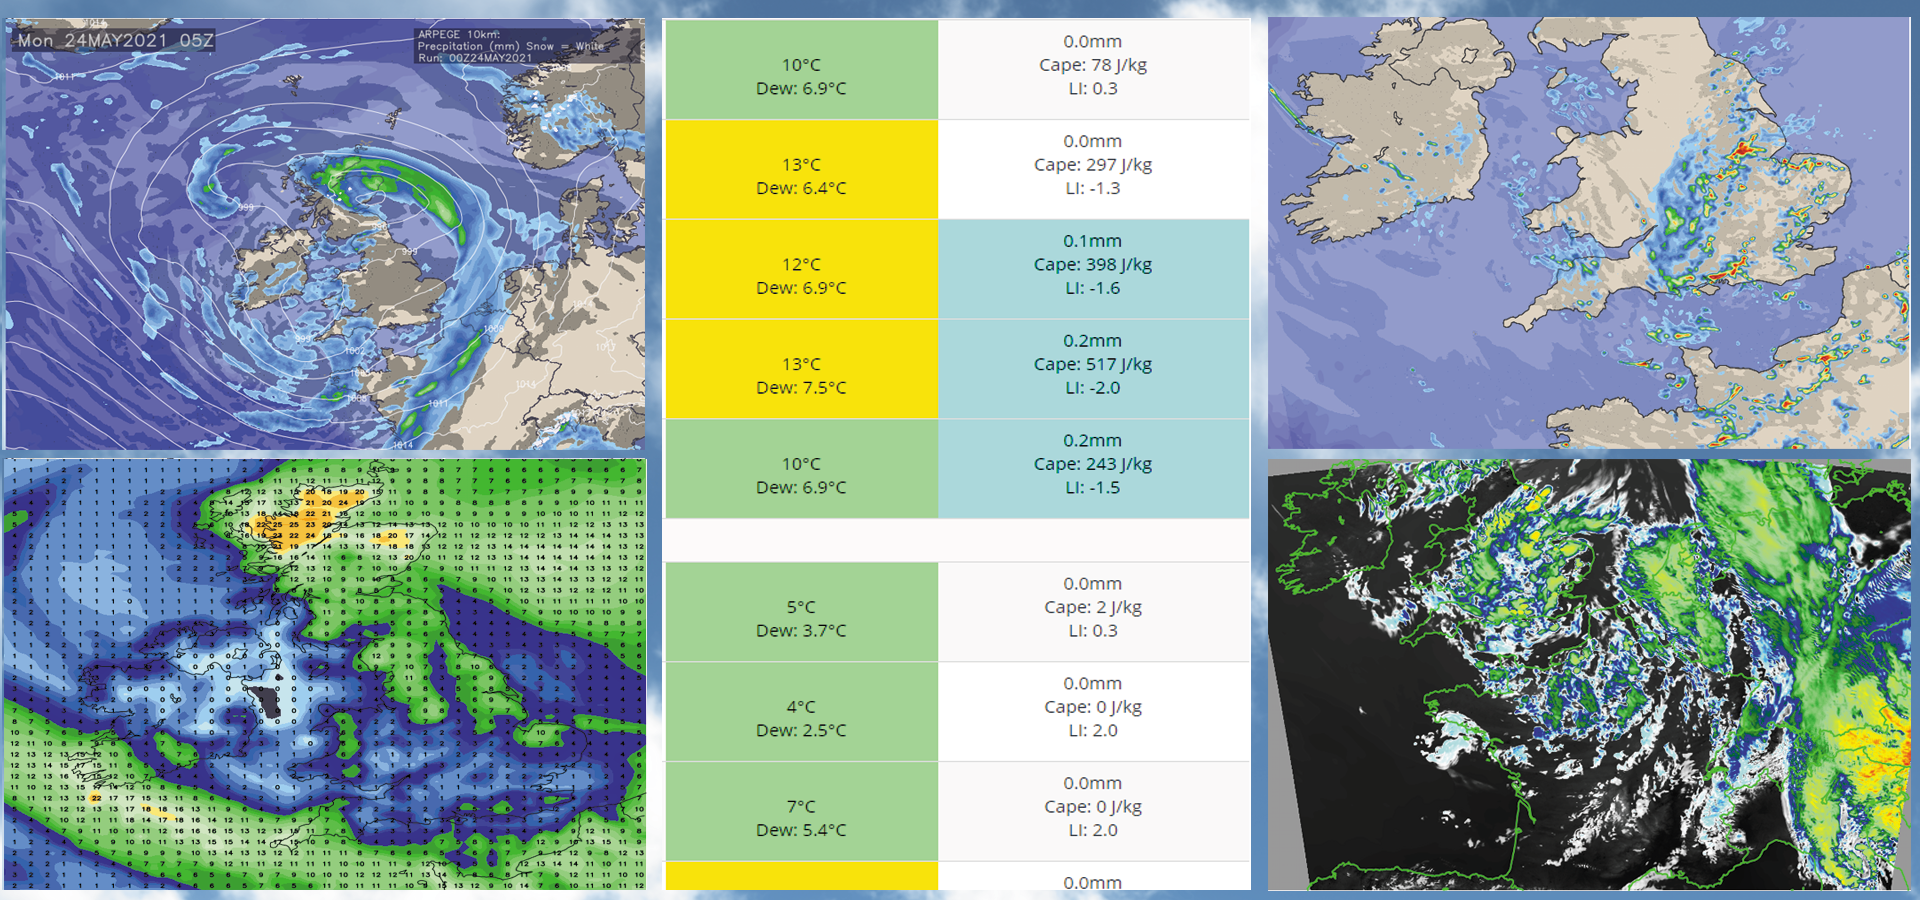 Your home for accurate weather forecasts